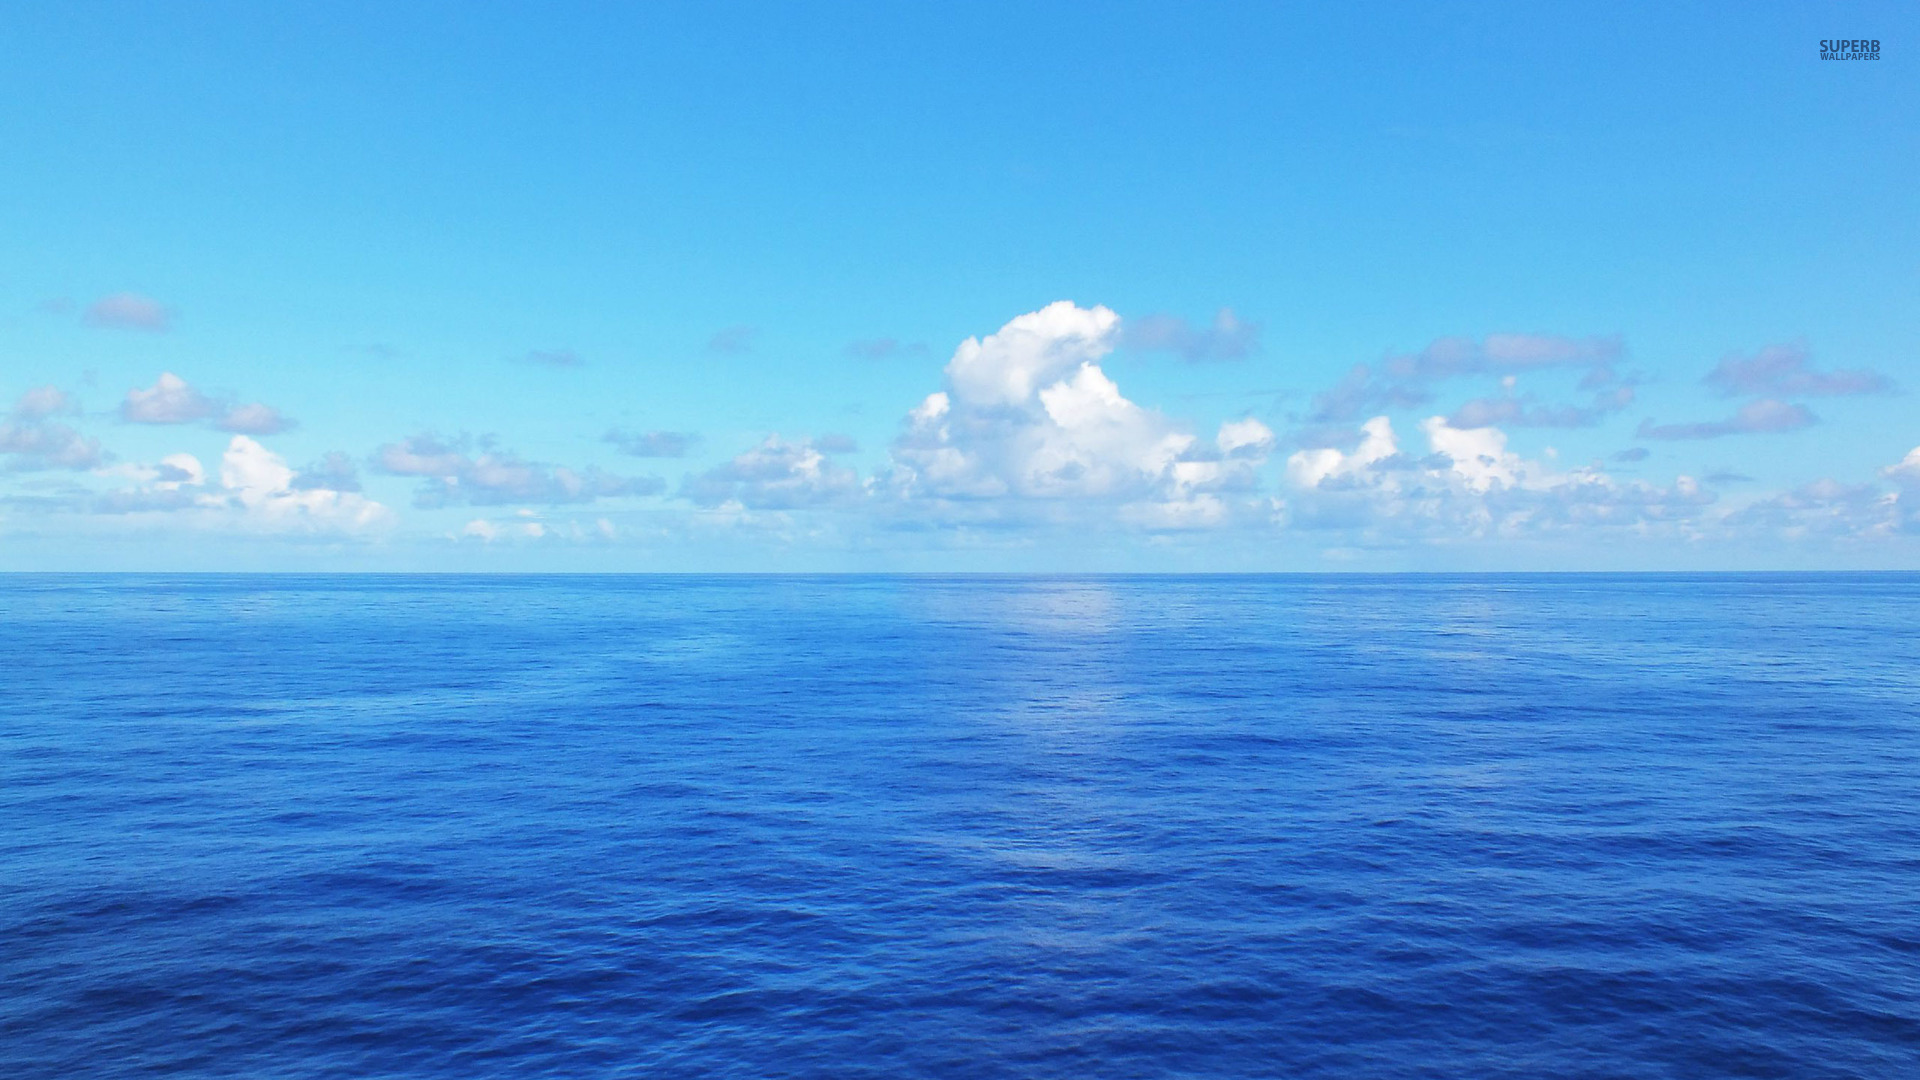 desktop backgrounds hd ocean - photo #6